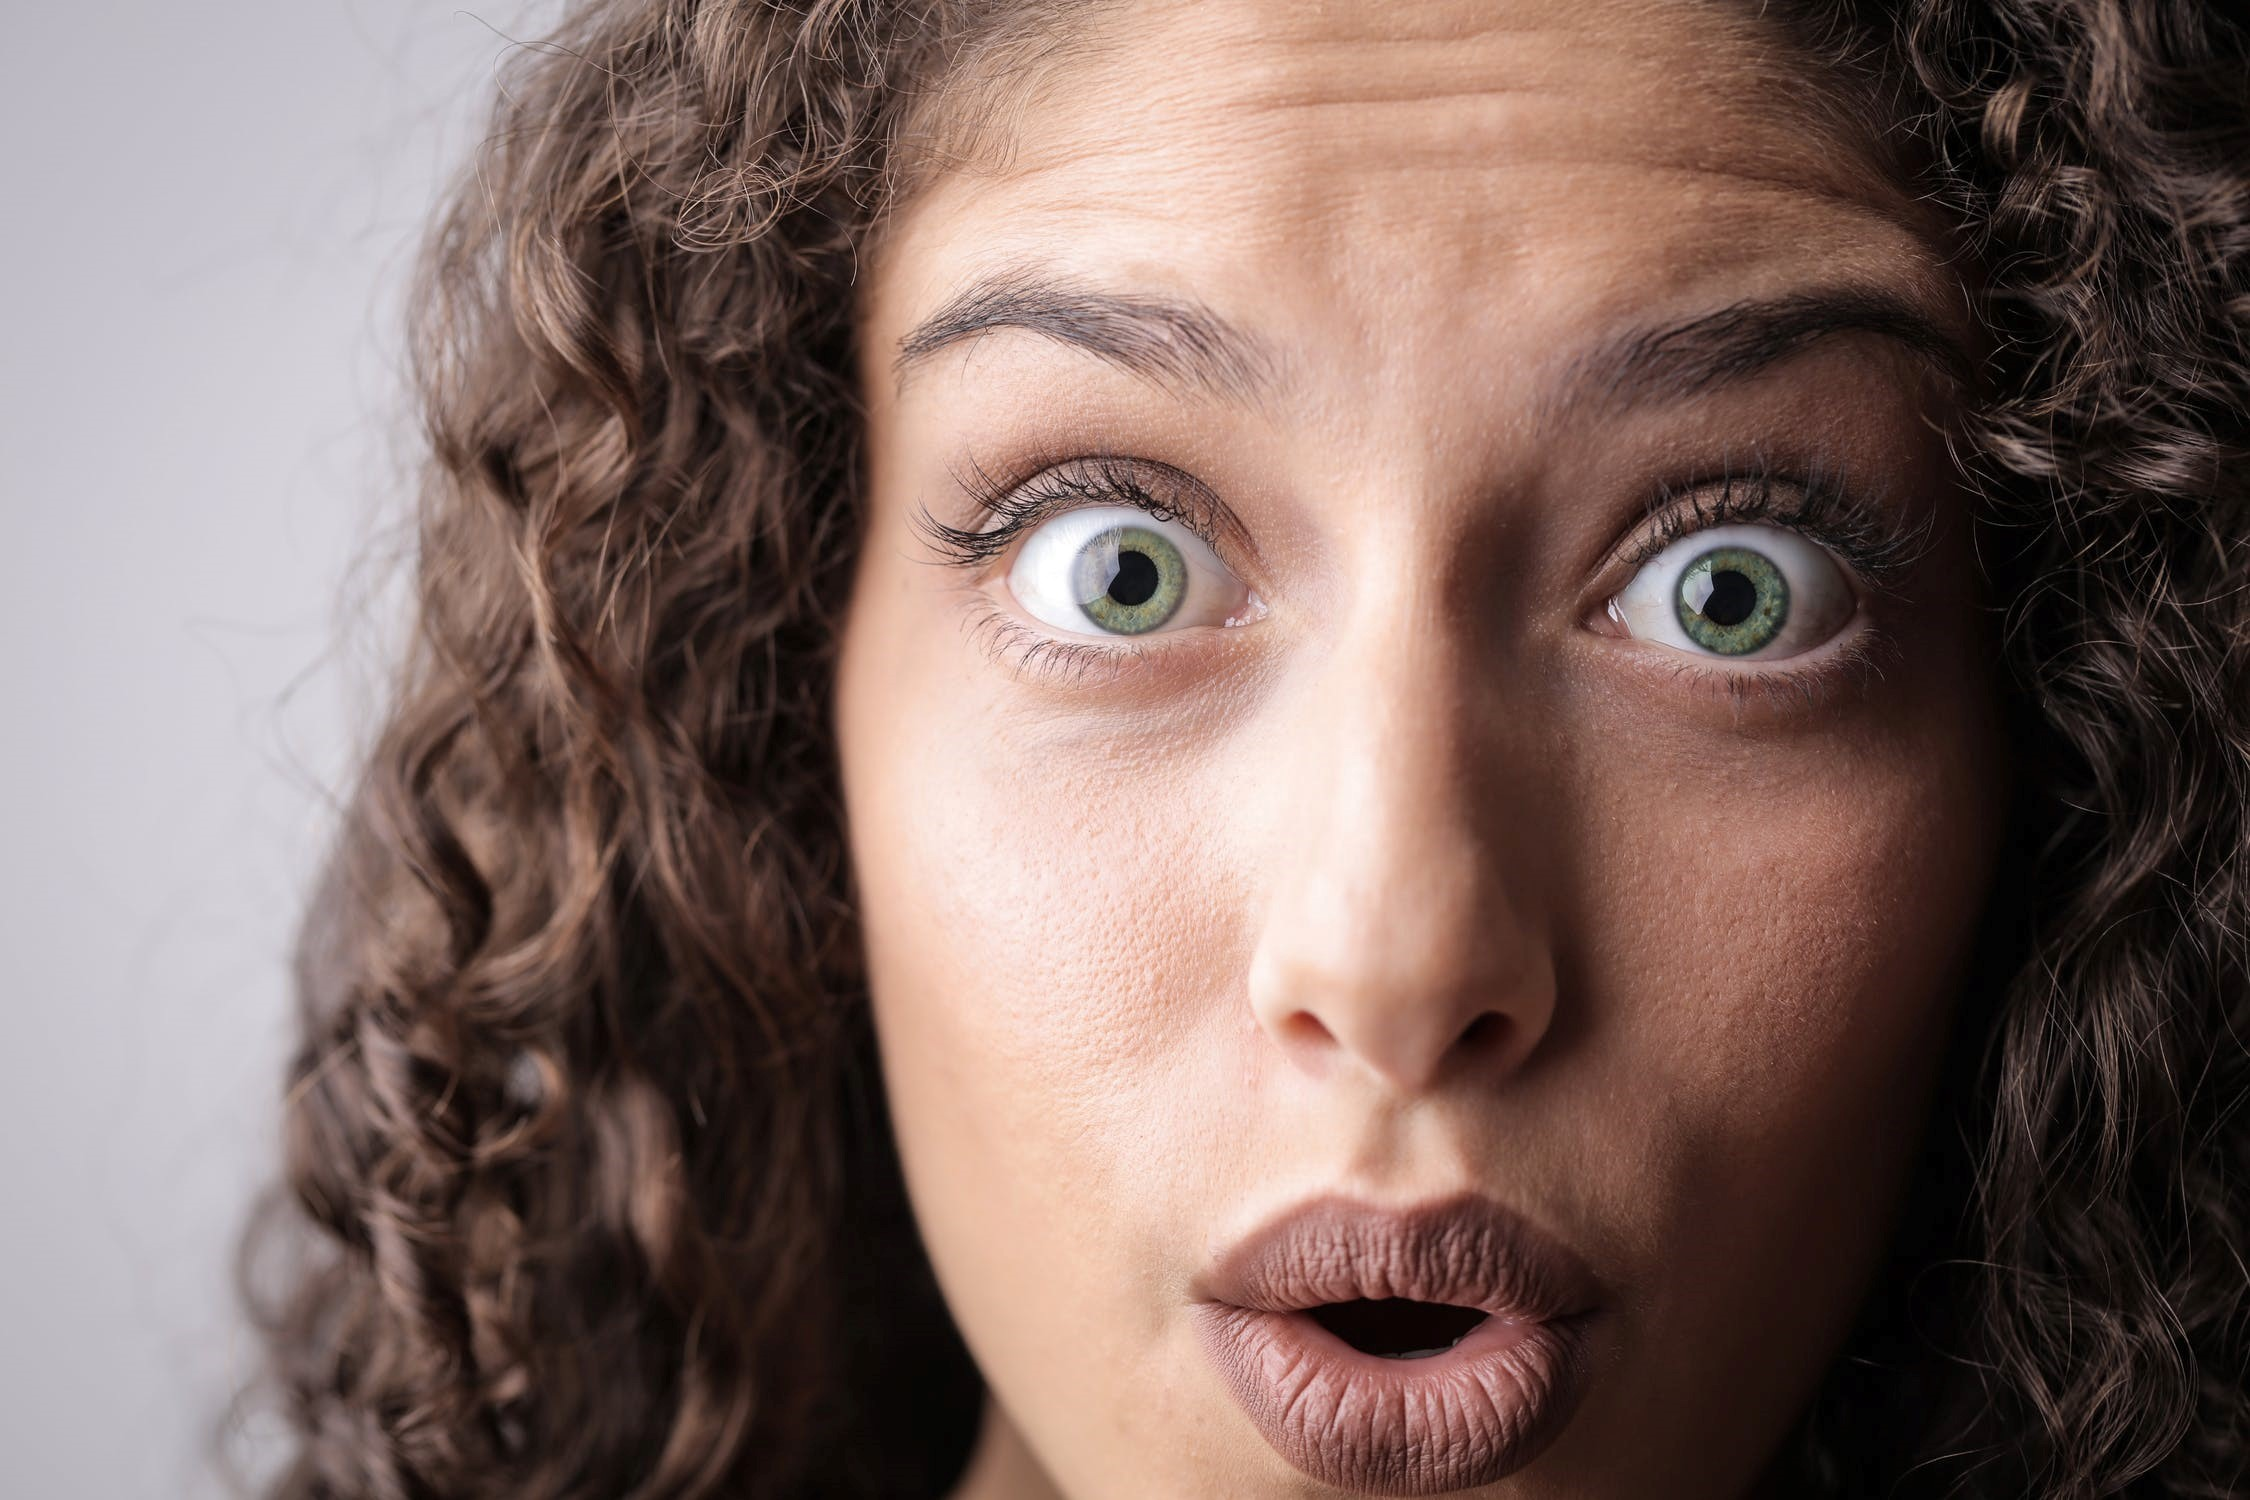 divorce lawyer Orlando - surprised woman with eyes wide open